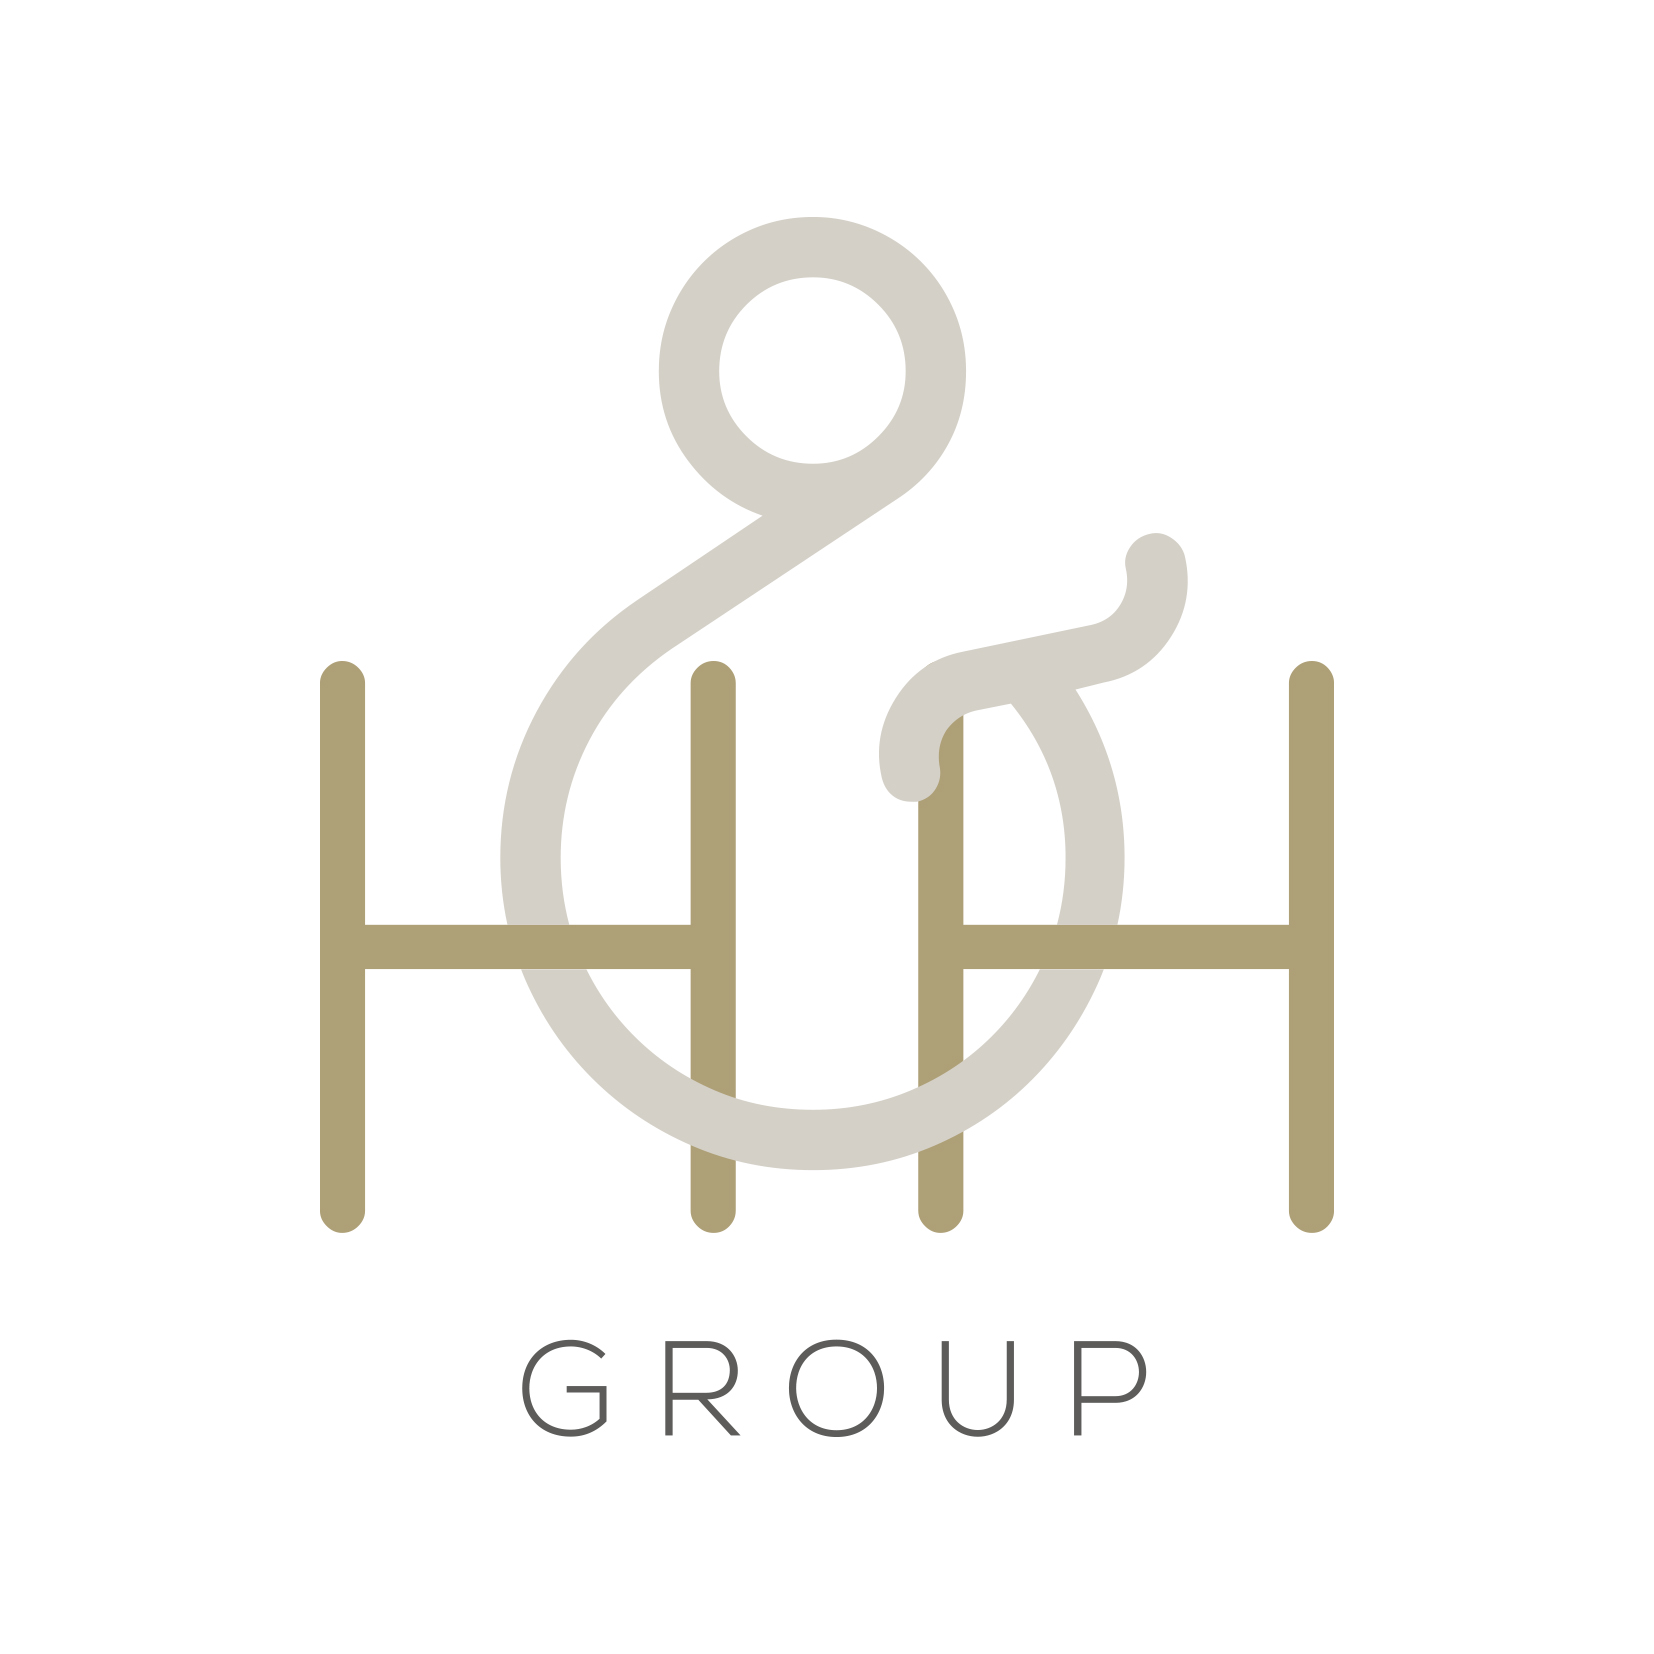 Hotels & Human Group